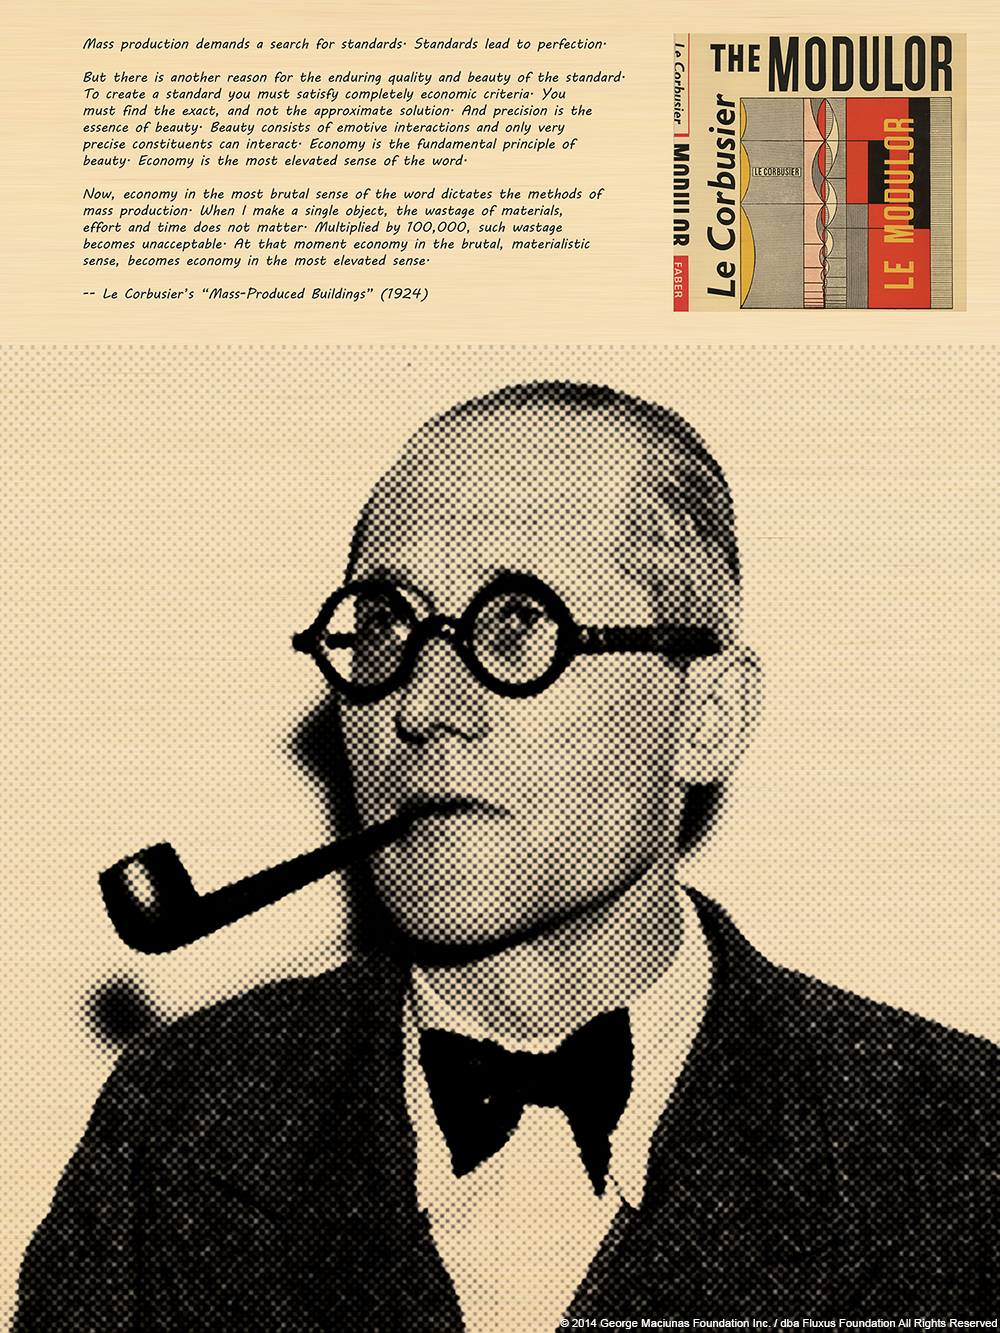 George Maciunas & Le Corbusier_Fluxus Foundation (1)